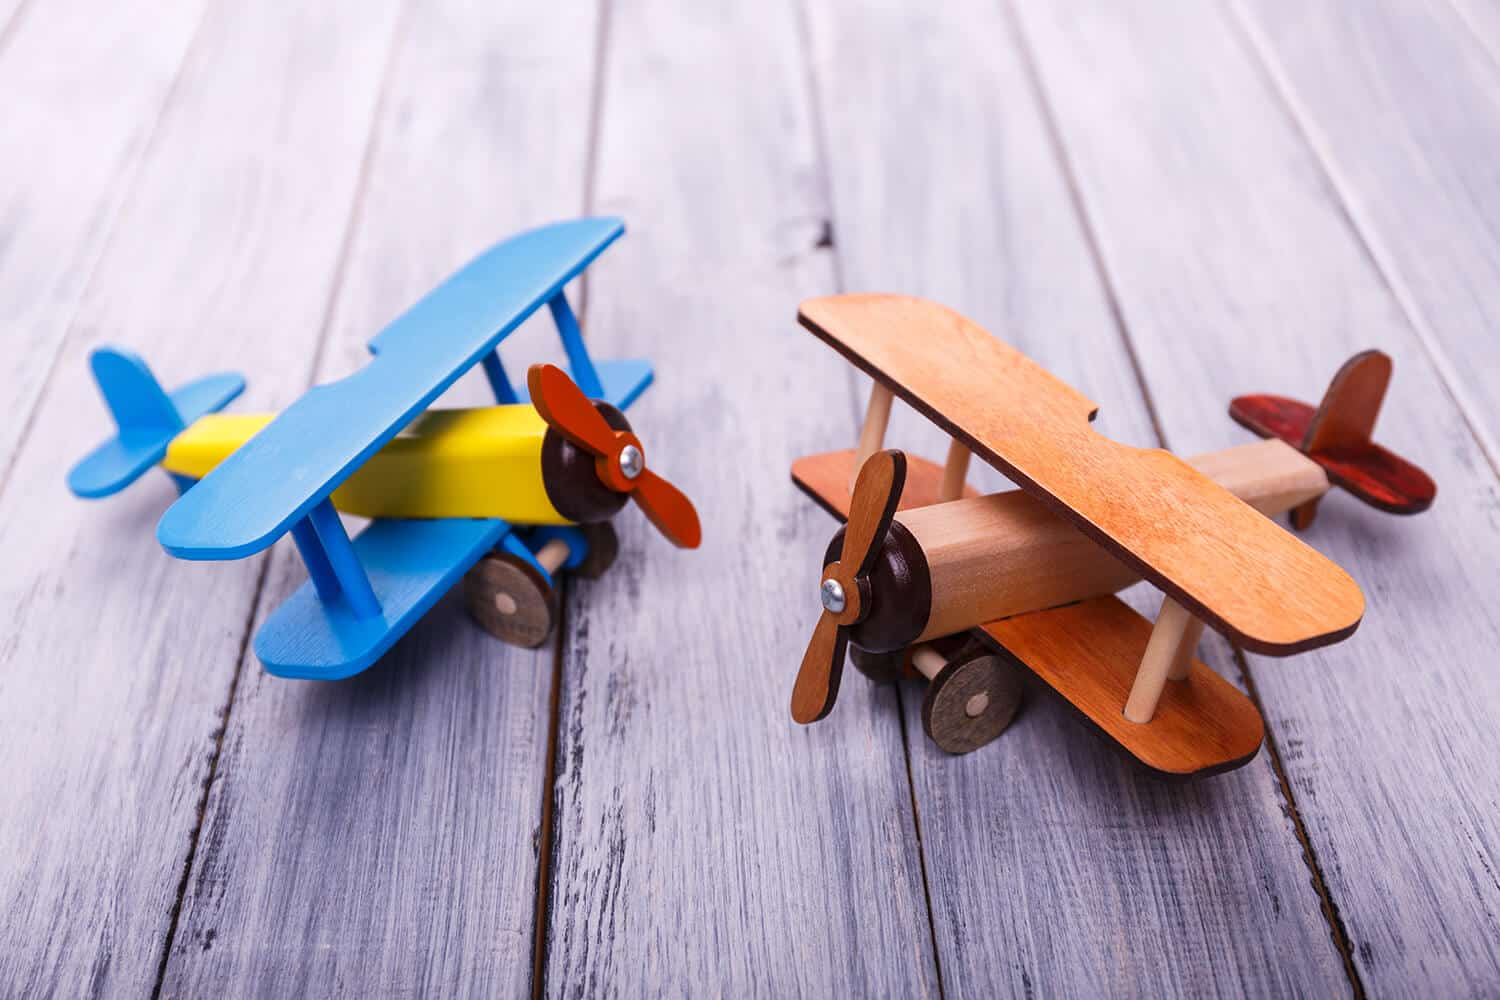 Building and selling wooden toys online